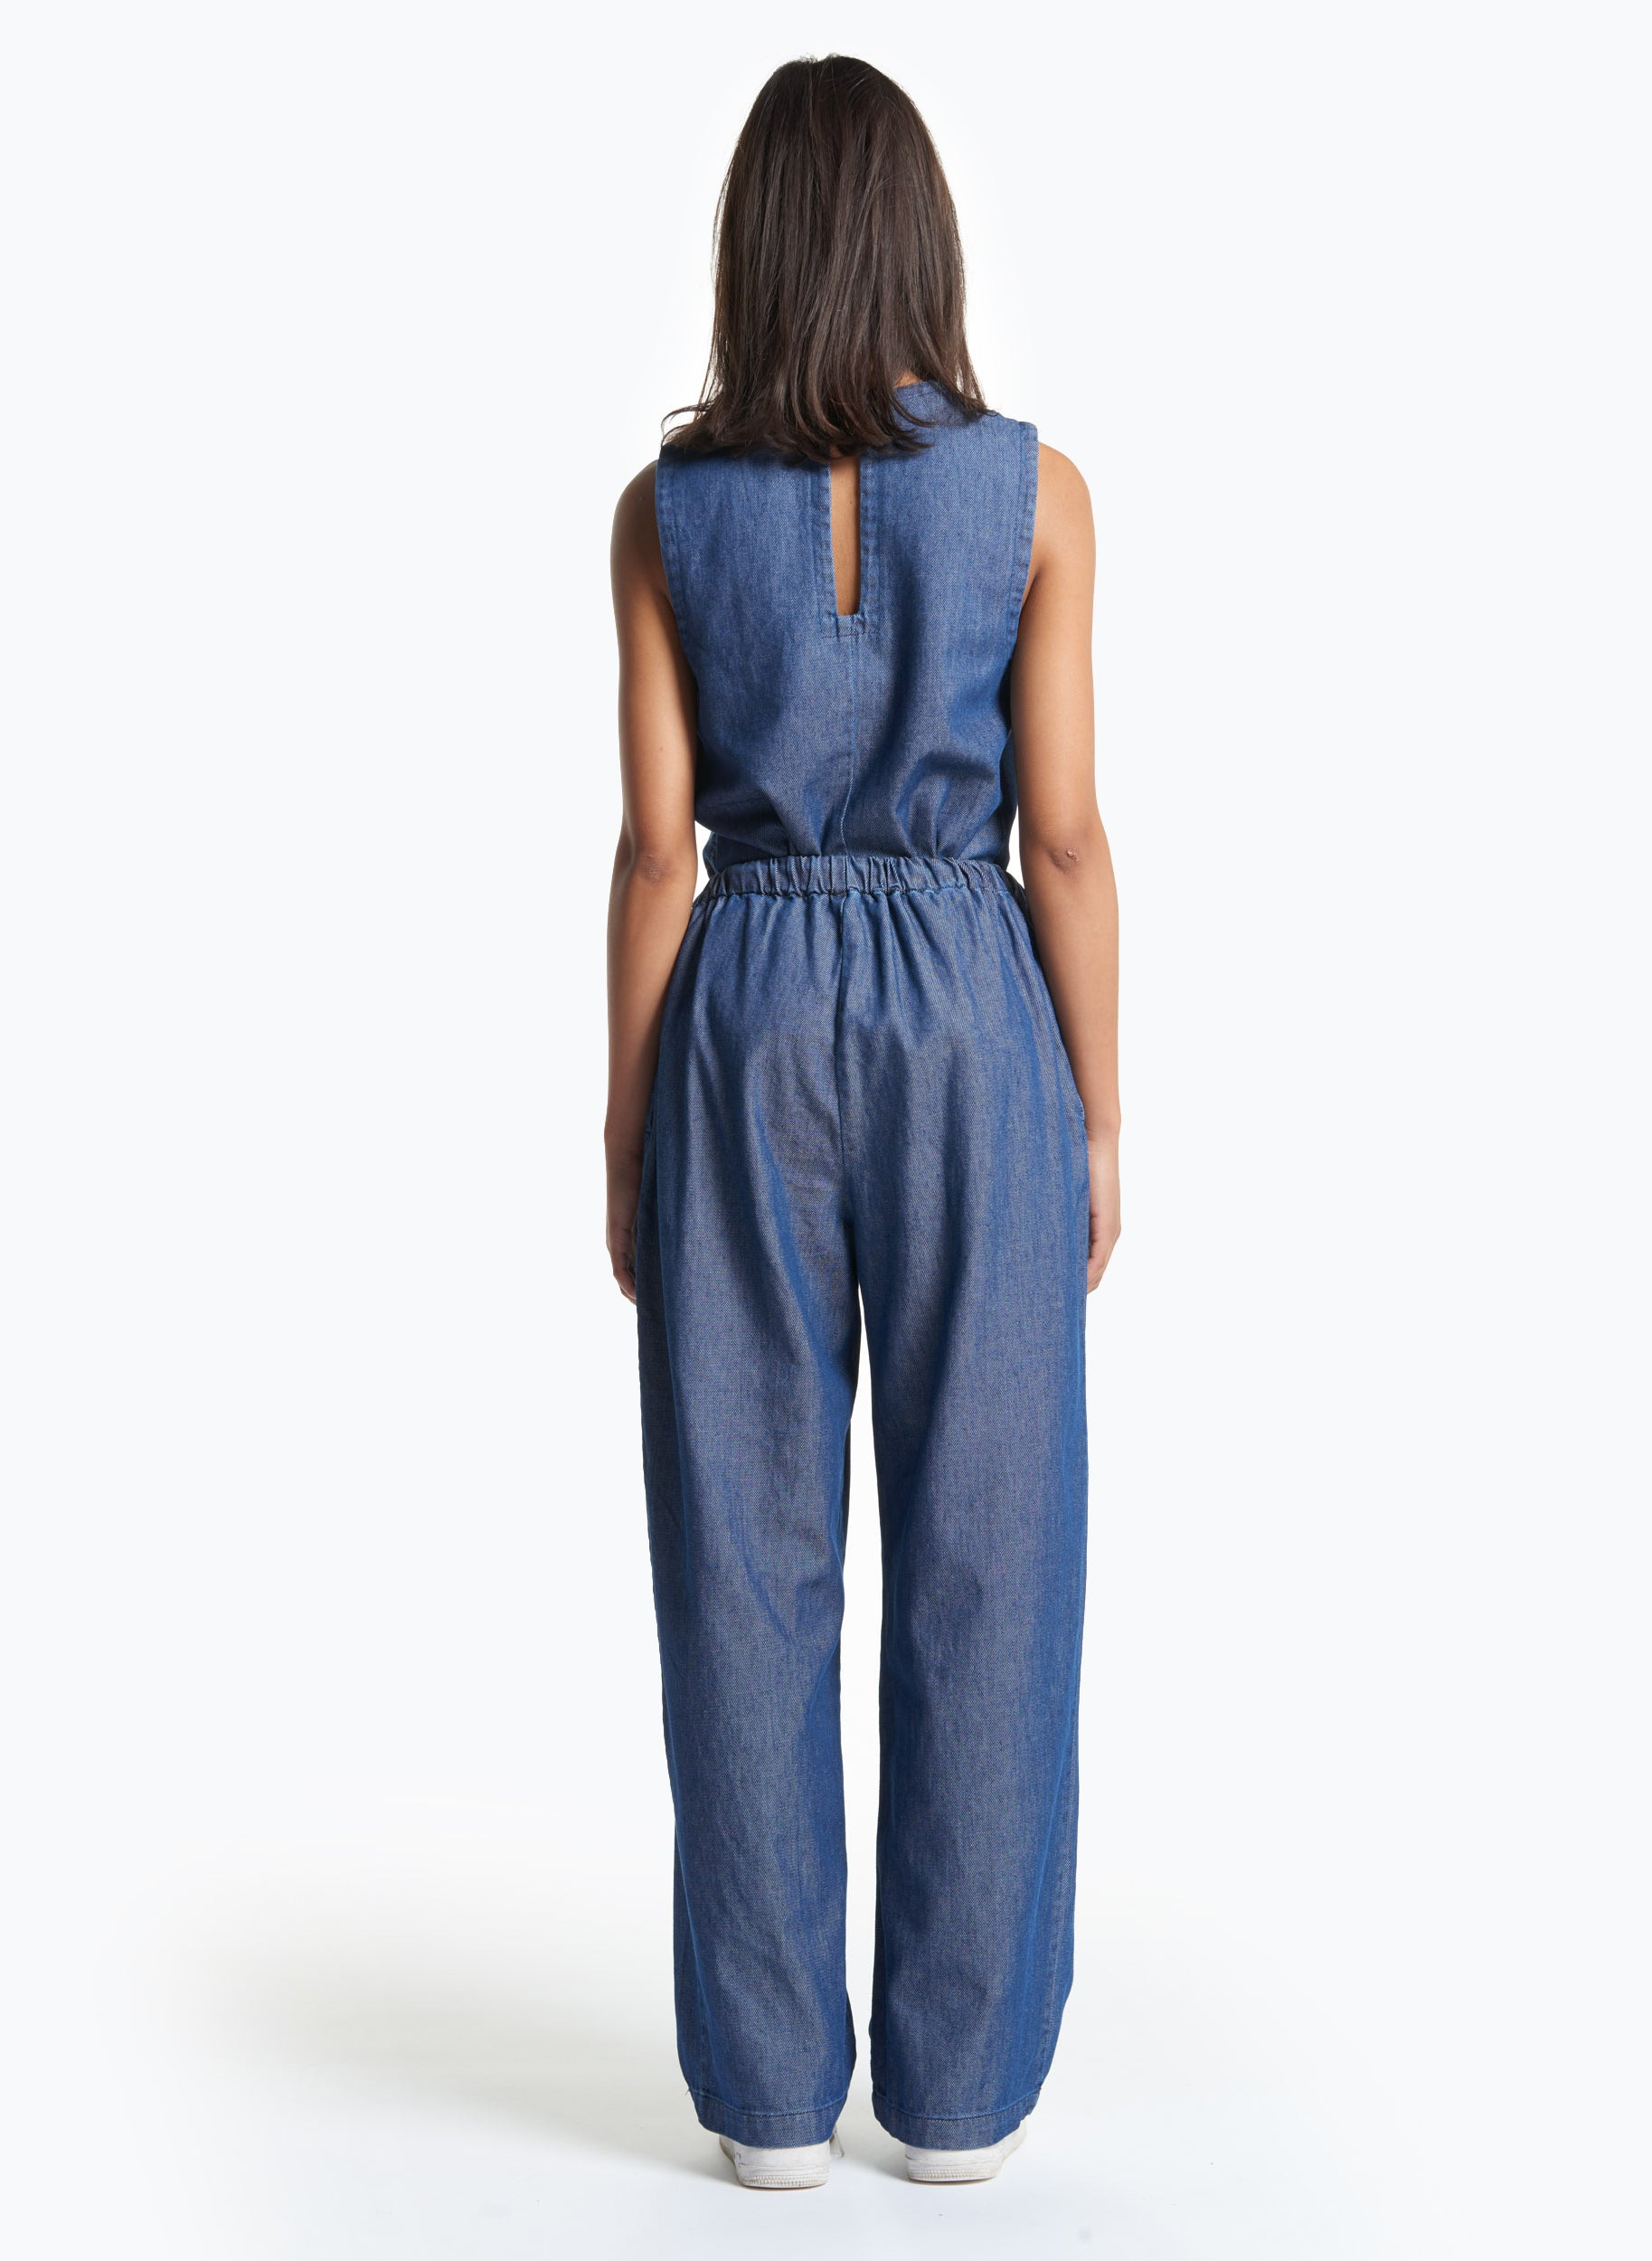 Elastic Waist Pants with Tie in Washed Denim